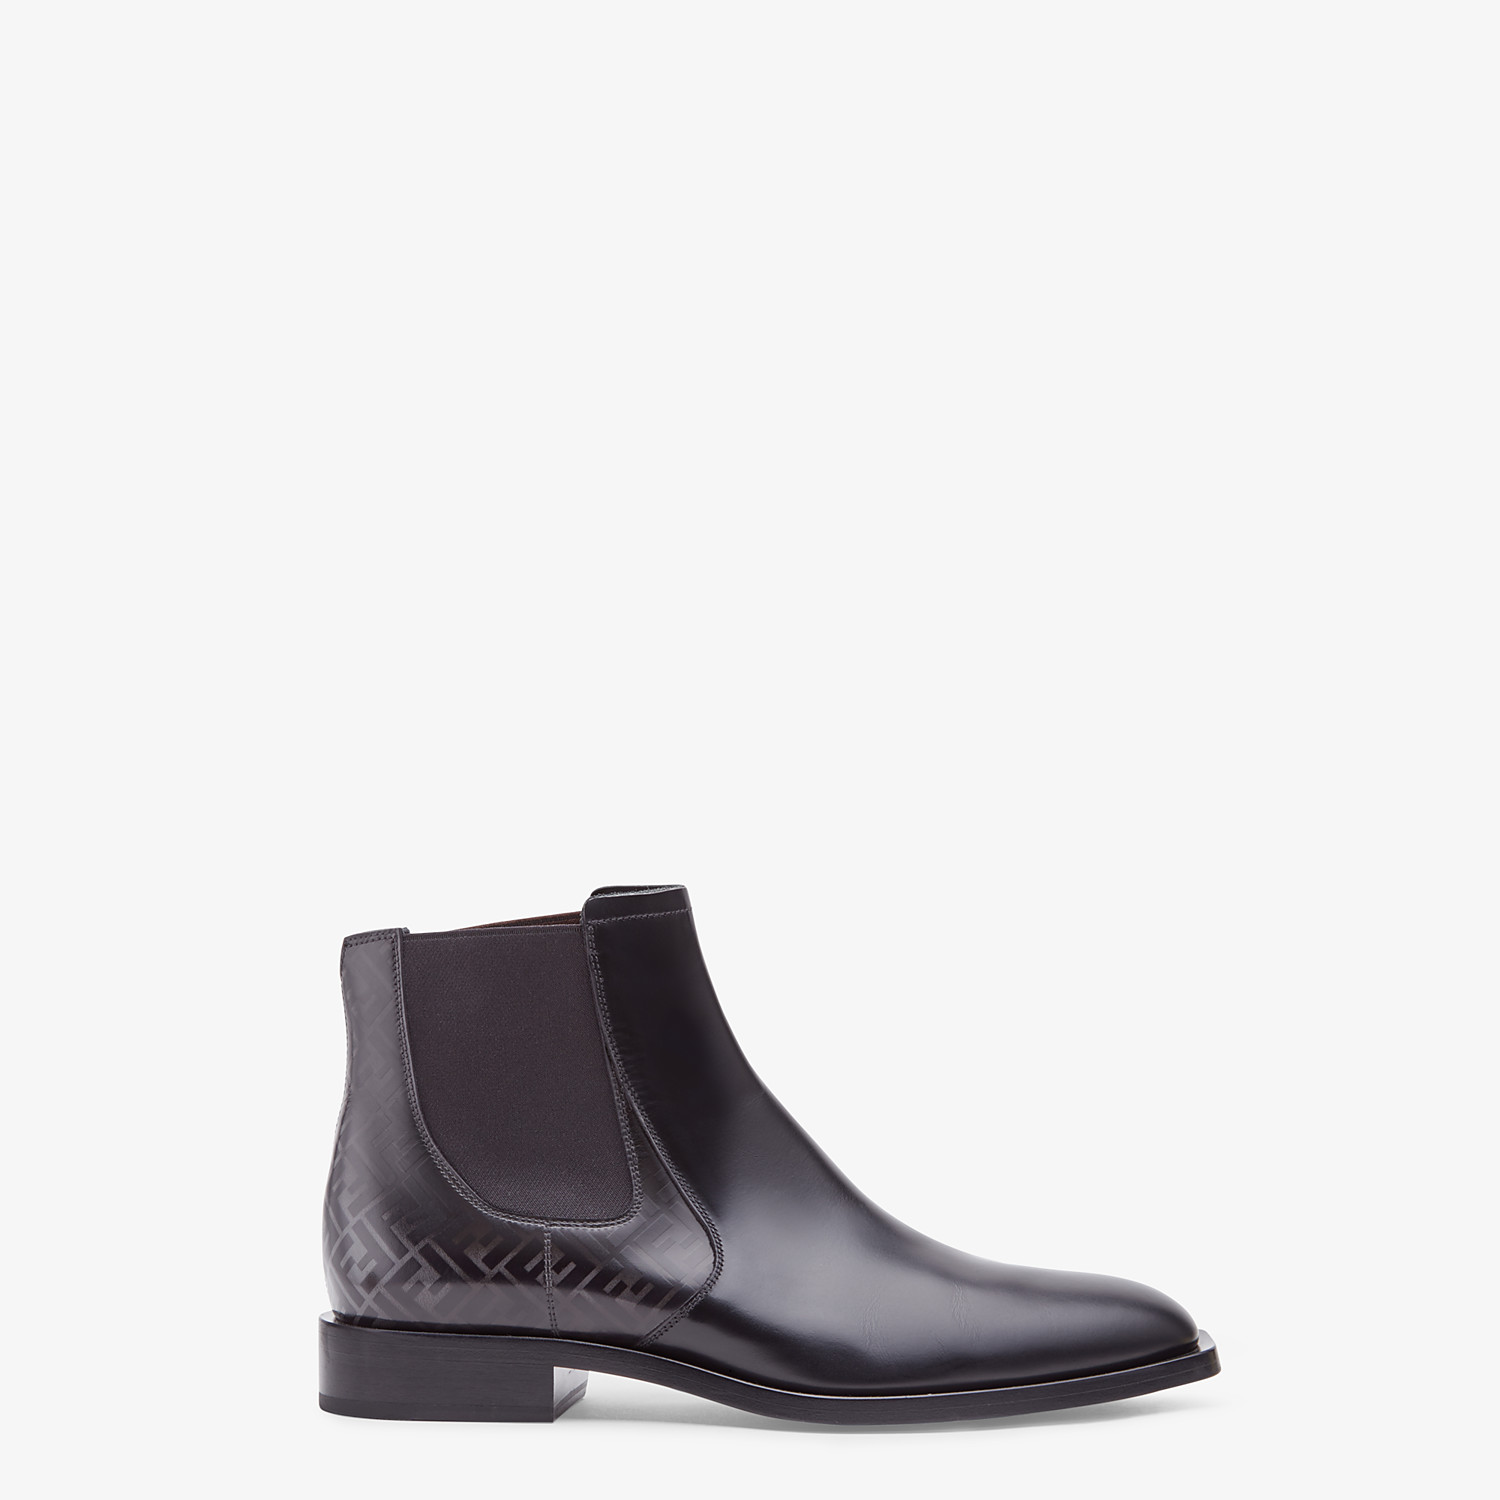 FENDI CHELSEA - Black leather ankle boots - view 1 detail